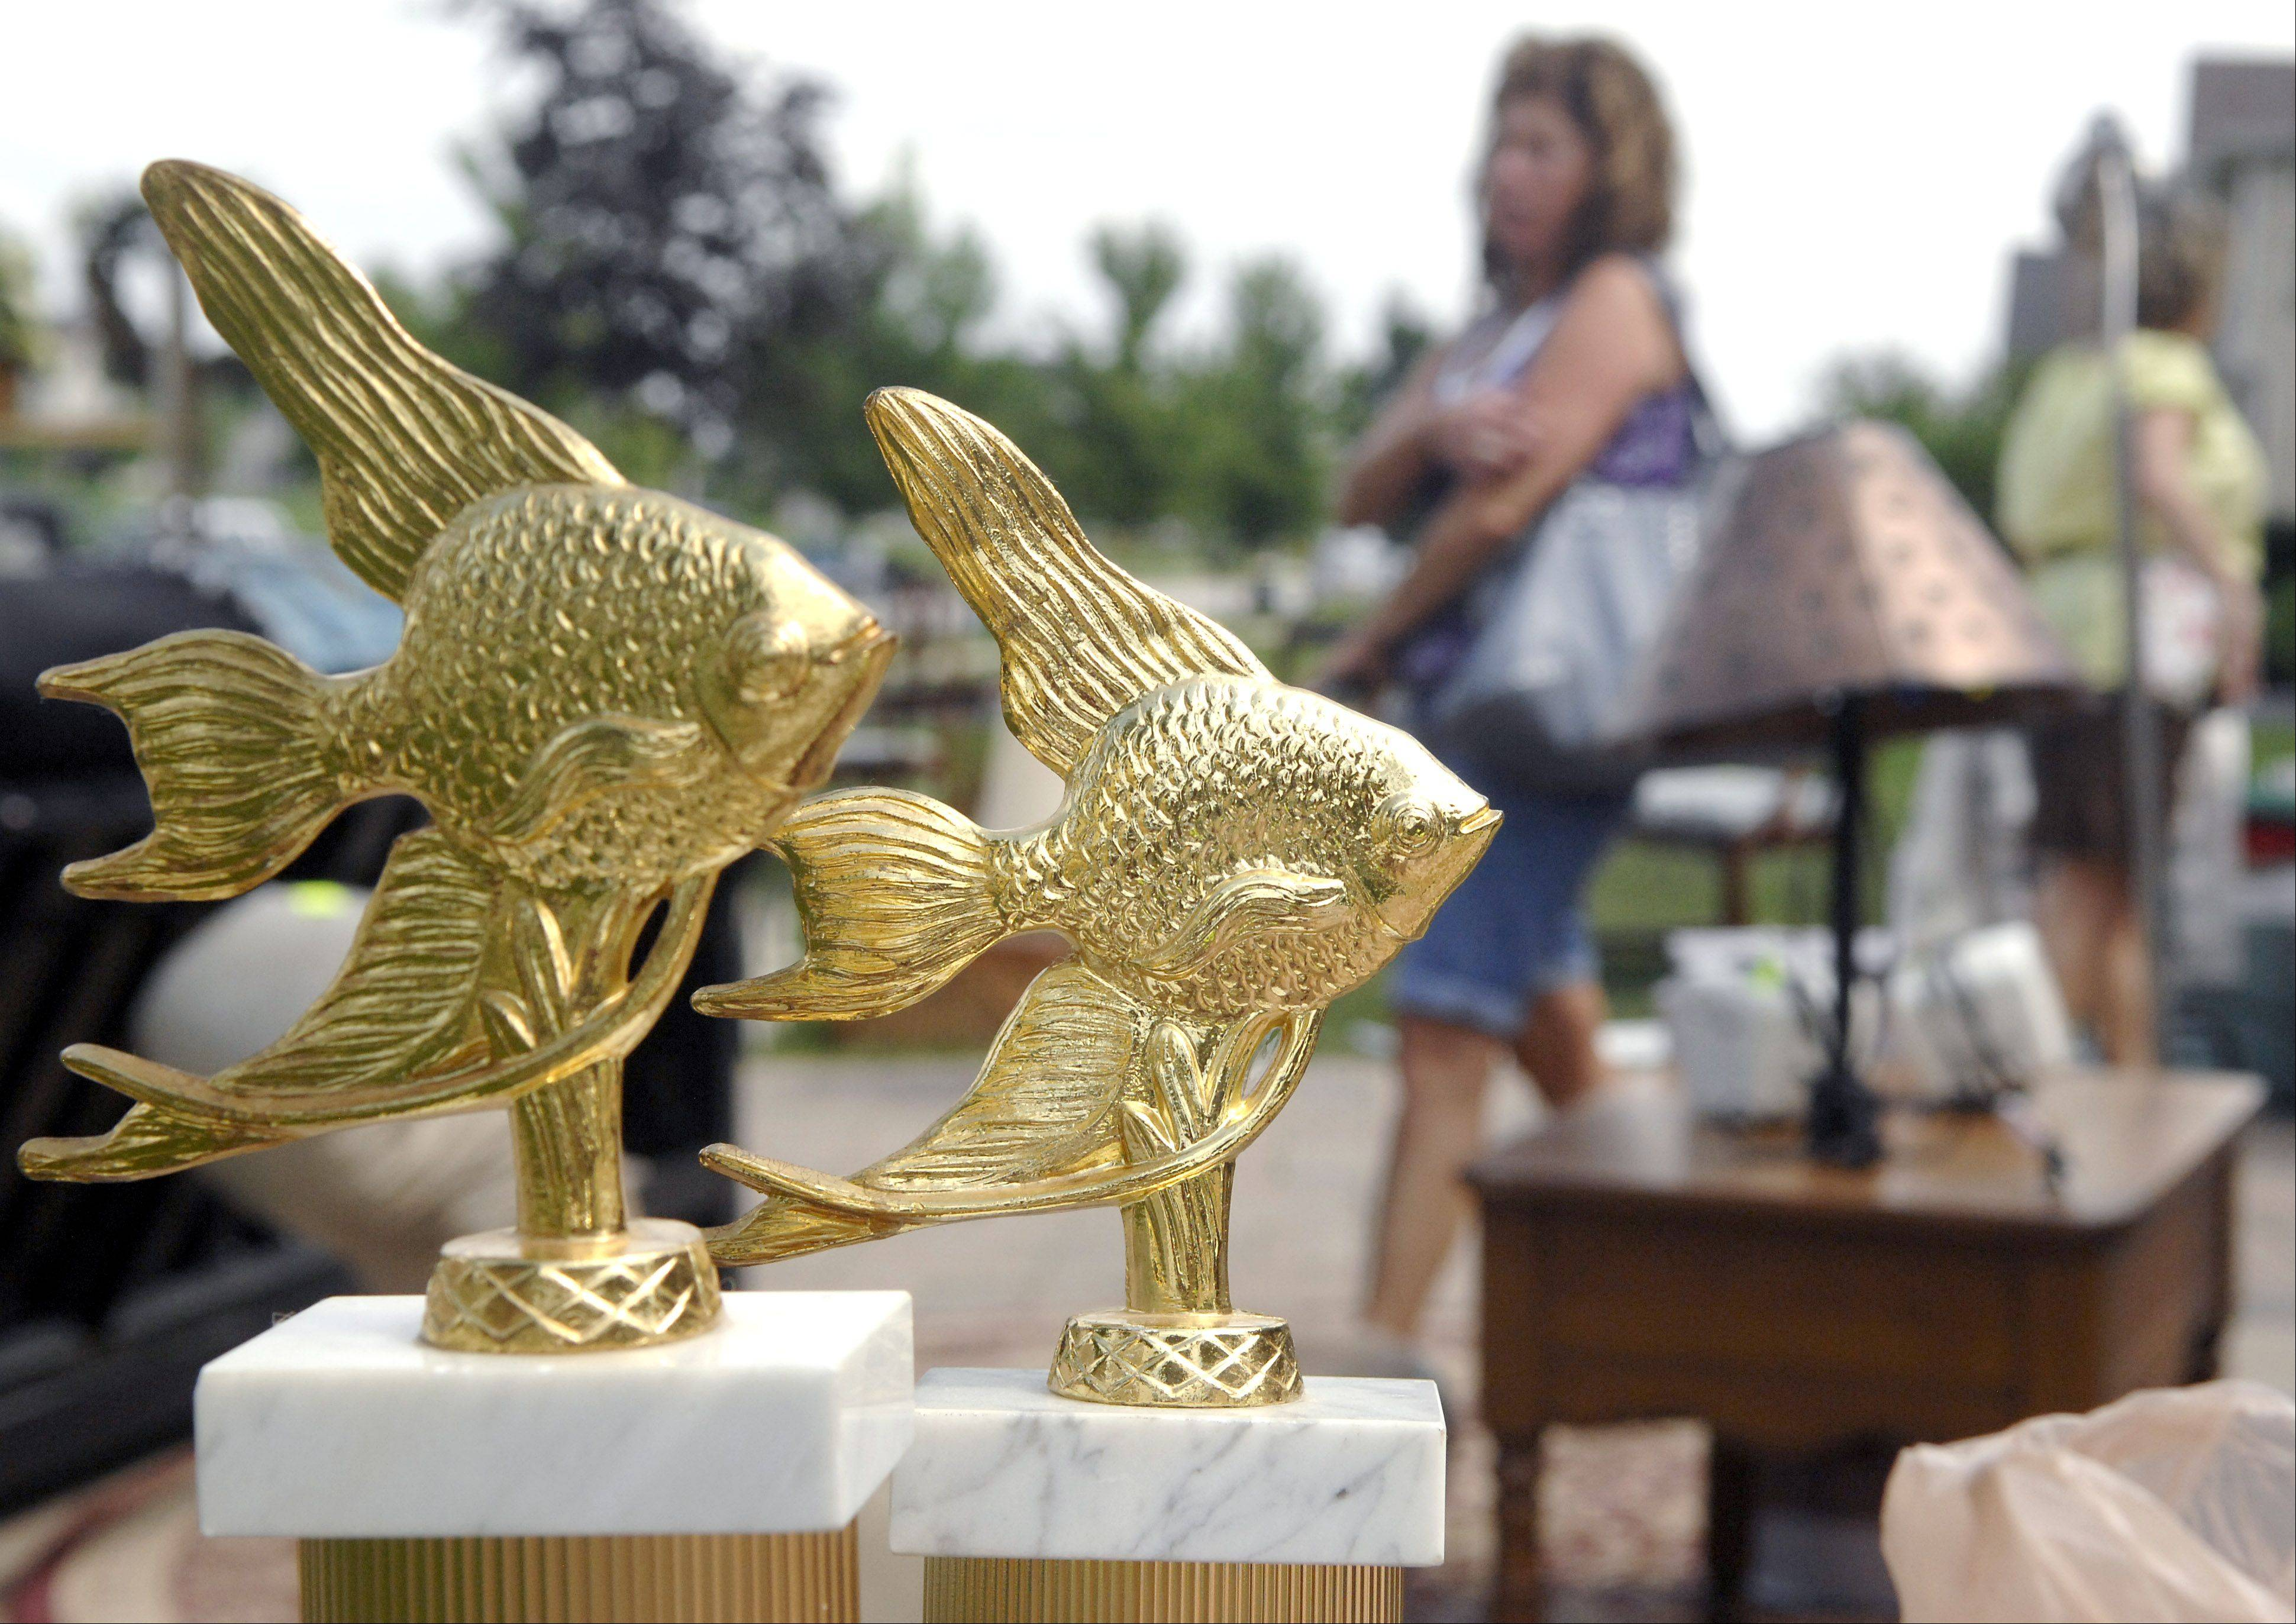 Find some treasures, like these angelfish trophies from two years ago, at the community garage sale Friday and Saturday, held in conjunction with North Aurora Days.